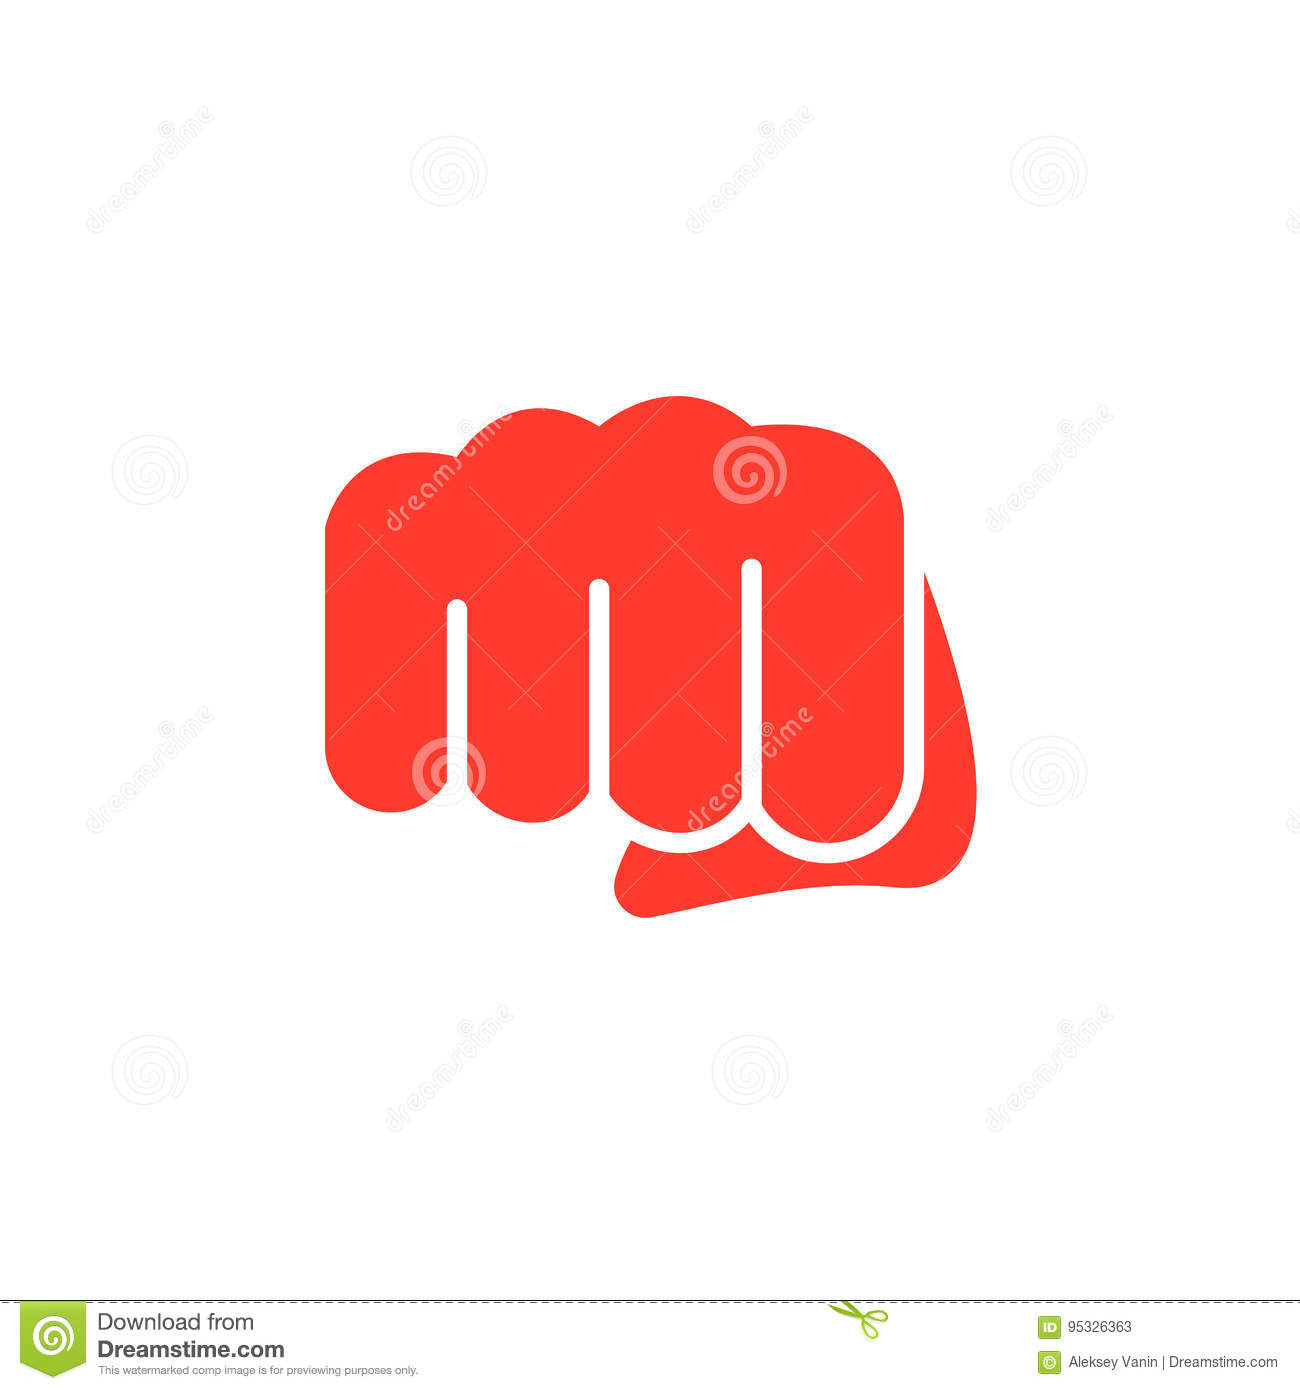 Fist Punch Stock Illustrations 11 211 Fist Punch Stock Illustrations Vectors Clipart Dreamstime